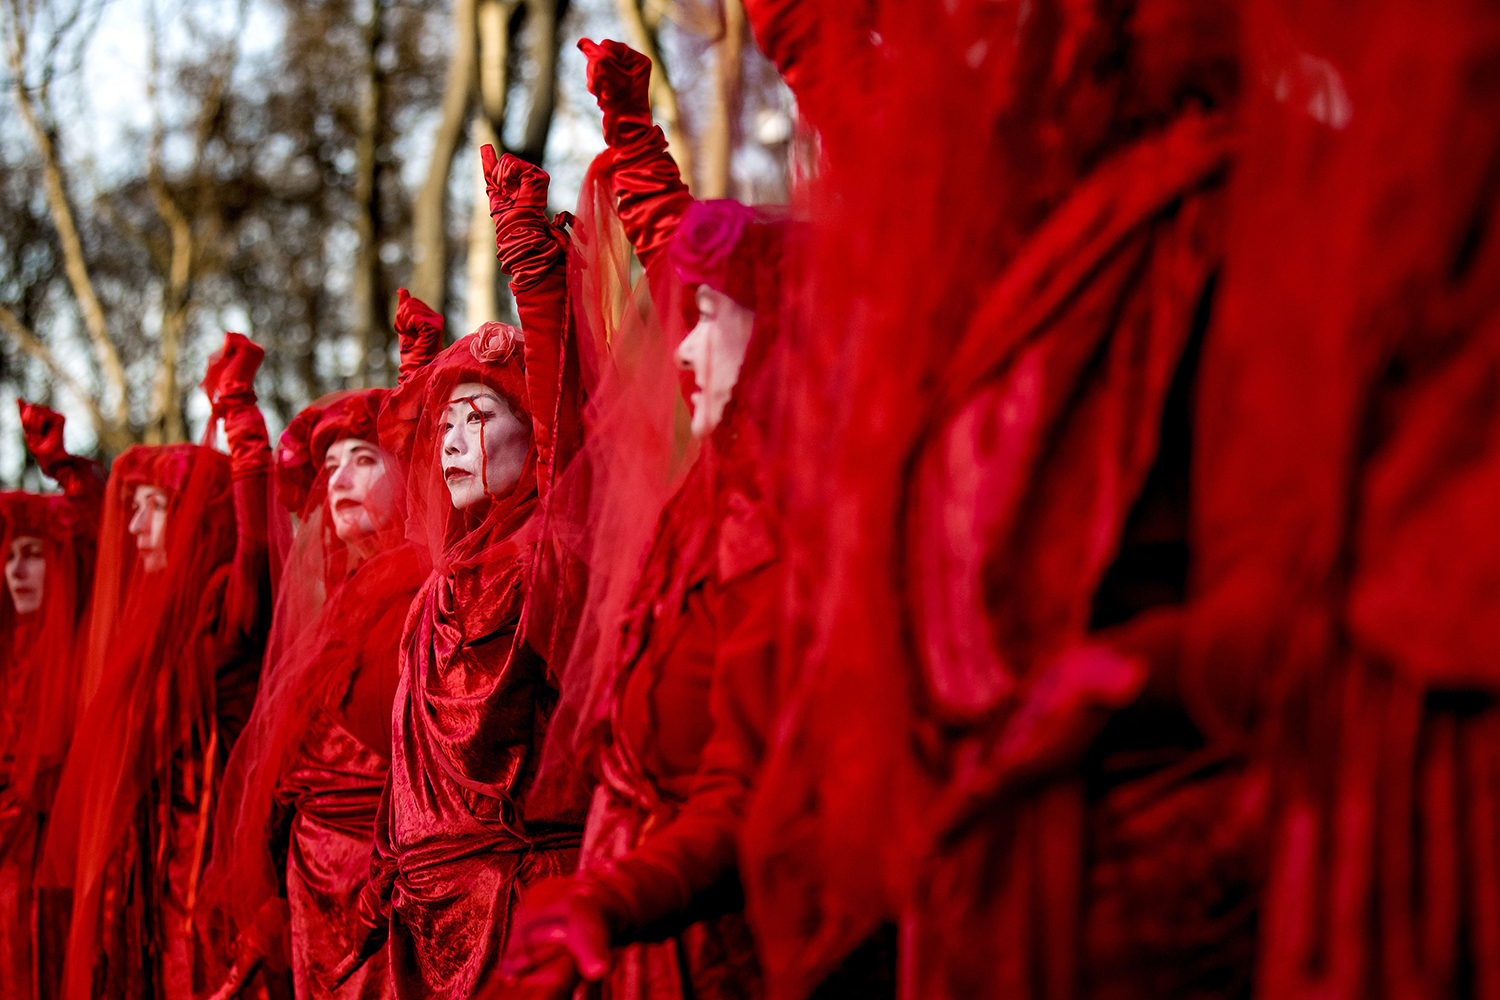 Extinction Rebellion and Red Rebels activists protest during a climate march to the Australian Embassy in The Hague as they take part in a worldwide campaign to draw attention to bushfires in Australia on Jan. 16. KOEN VAN WEEL/ANP/AFP via Getty Images